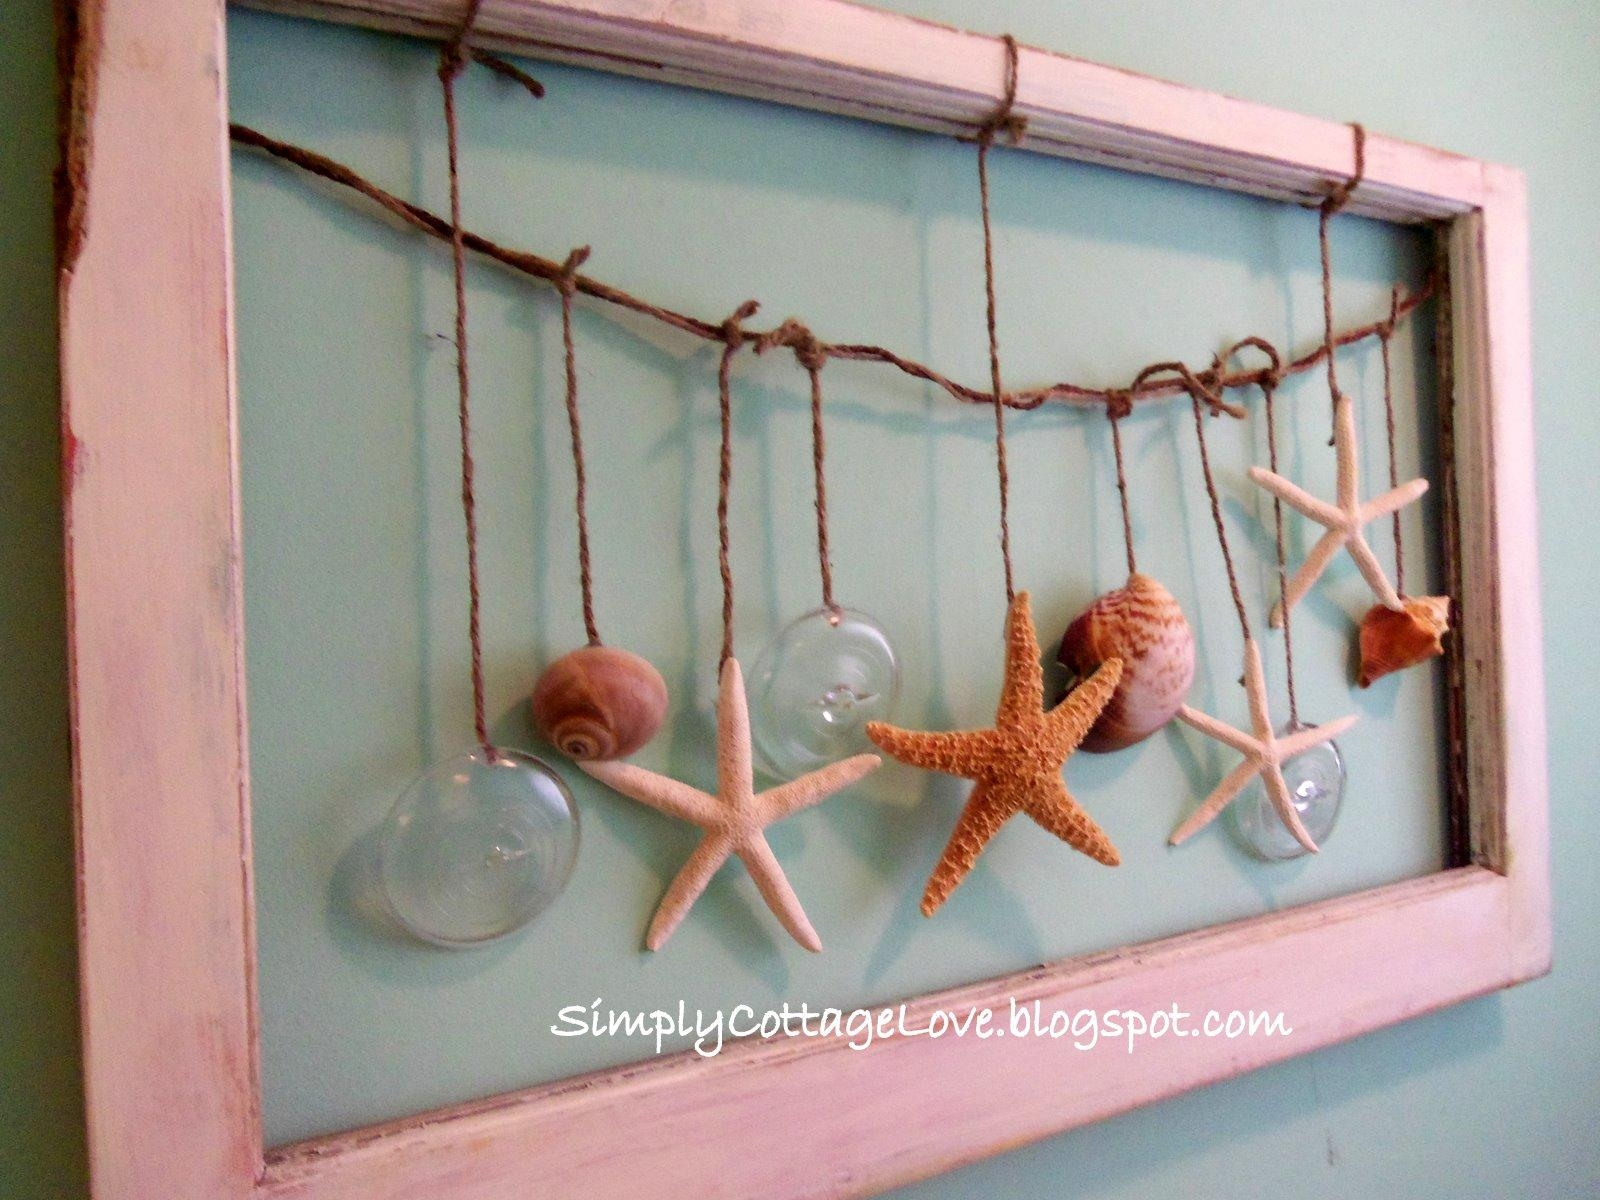 Simply Cottage Love: Beachy Wall Art Pertaining To Beach Cottage Wall Art (View 12 of 20)